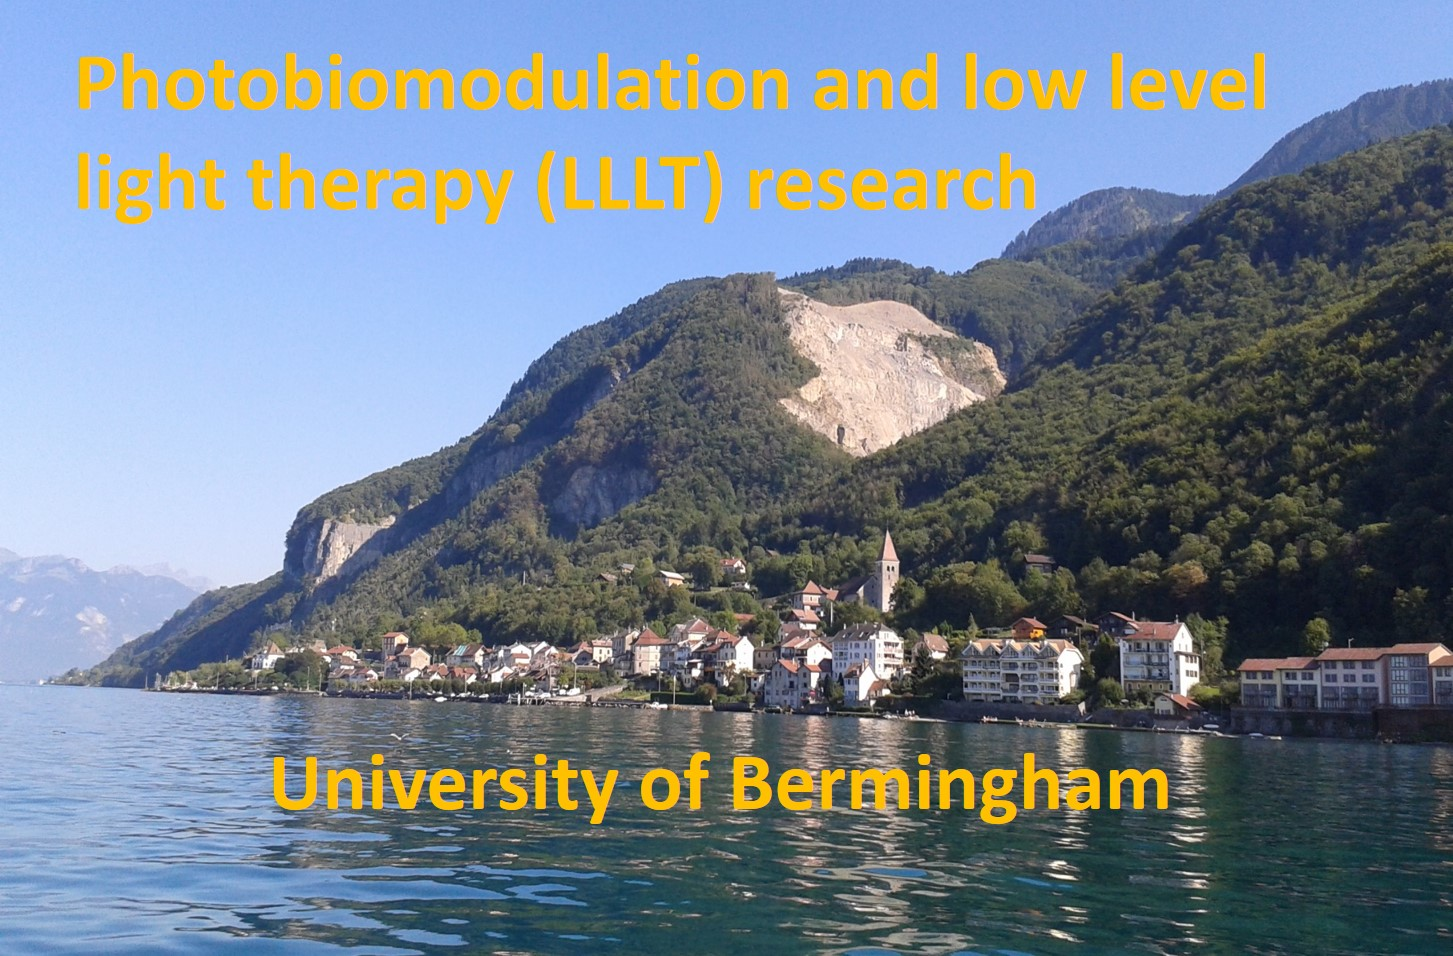 Photobiomodulation and low level light therapy (LLLT) research - University of Bermingham